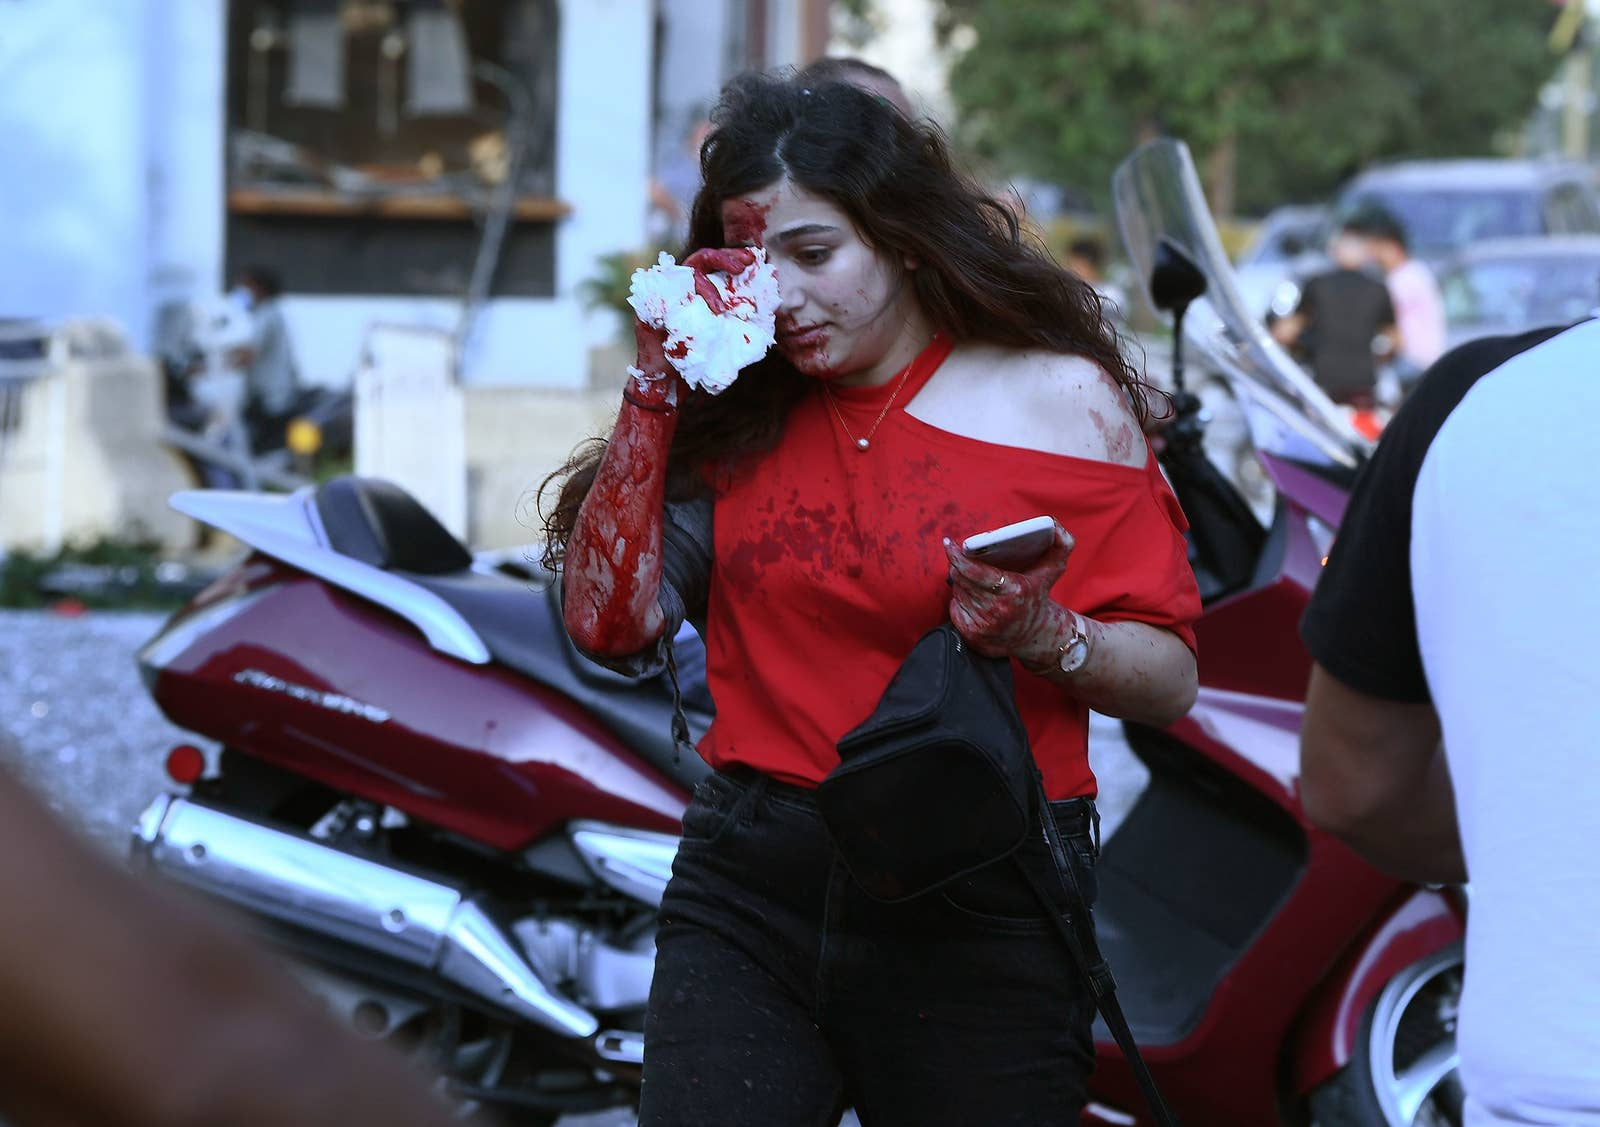 A woman in a red shirt covers her eye, her face, shirt, and arm covered in blood as she walks down the street